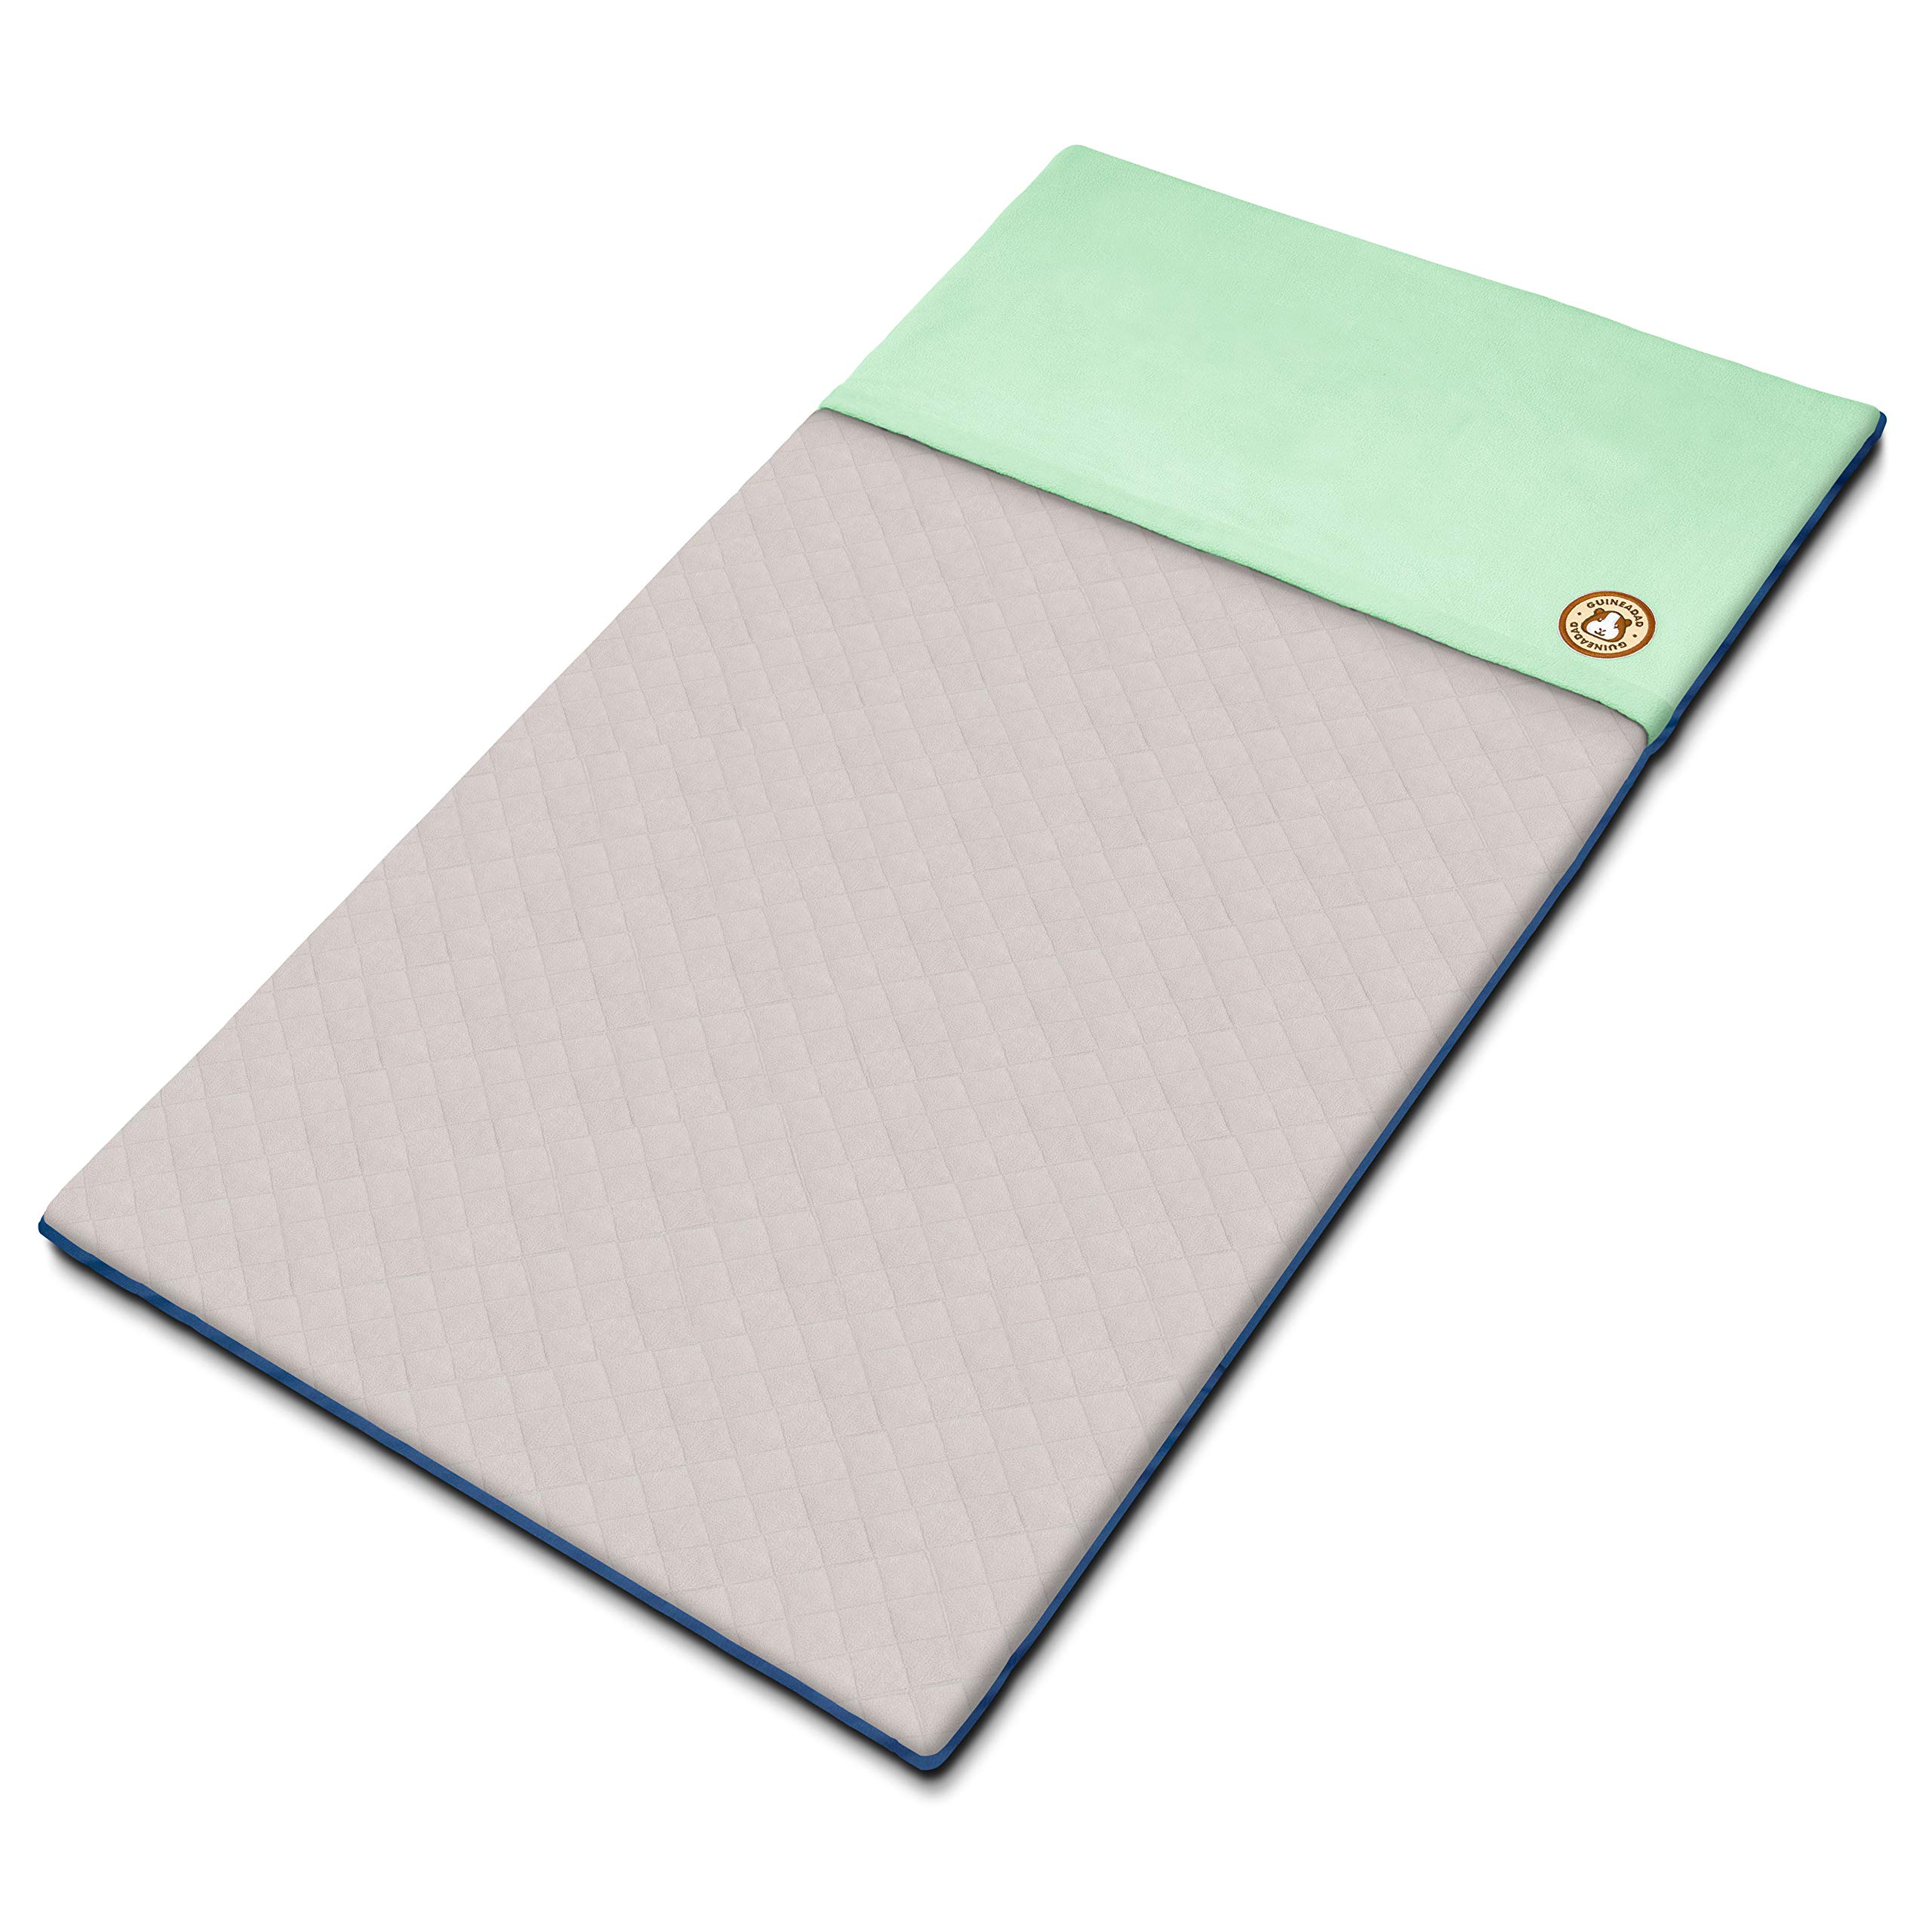 GuineaDad Fleece Liner 2.0 | Guinea Pig Fleece Cage Liners | Guinea Pig Bedding | Burrowing Pocket Sleeve | Extra Absorbent Antibacterial Bamboo | Waterproof | Available in Various Cage Sizes